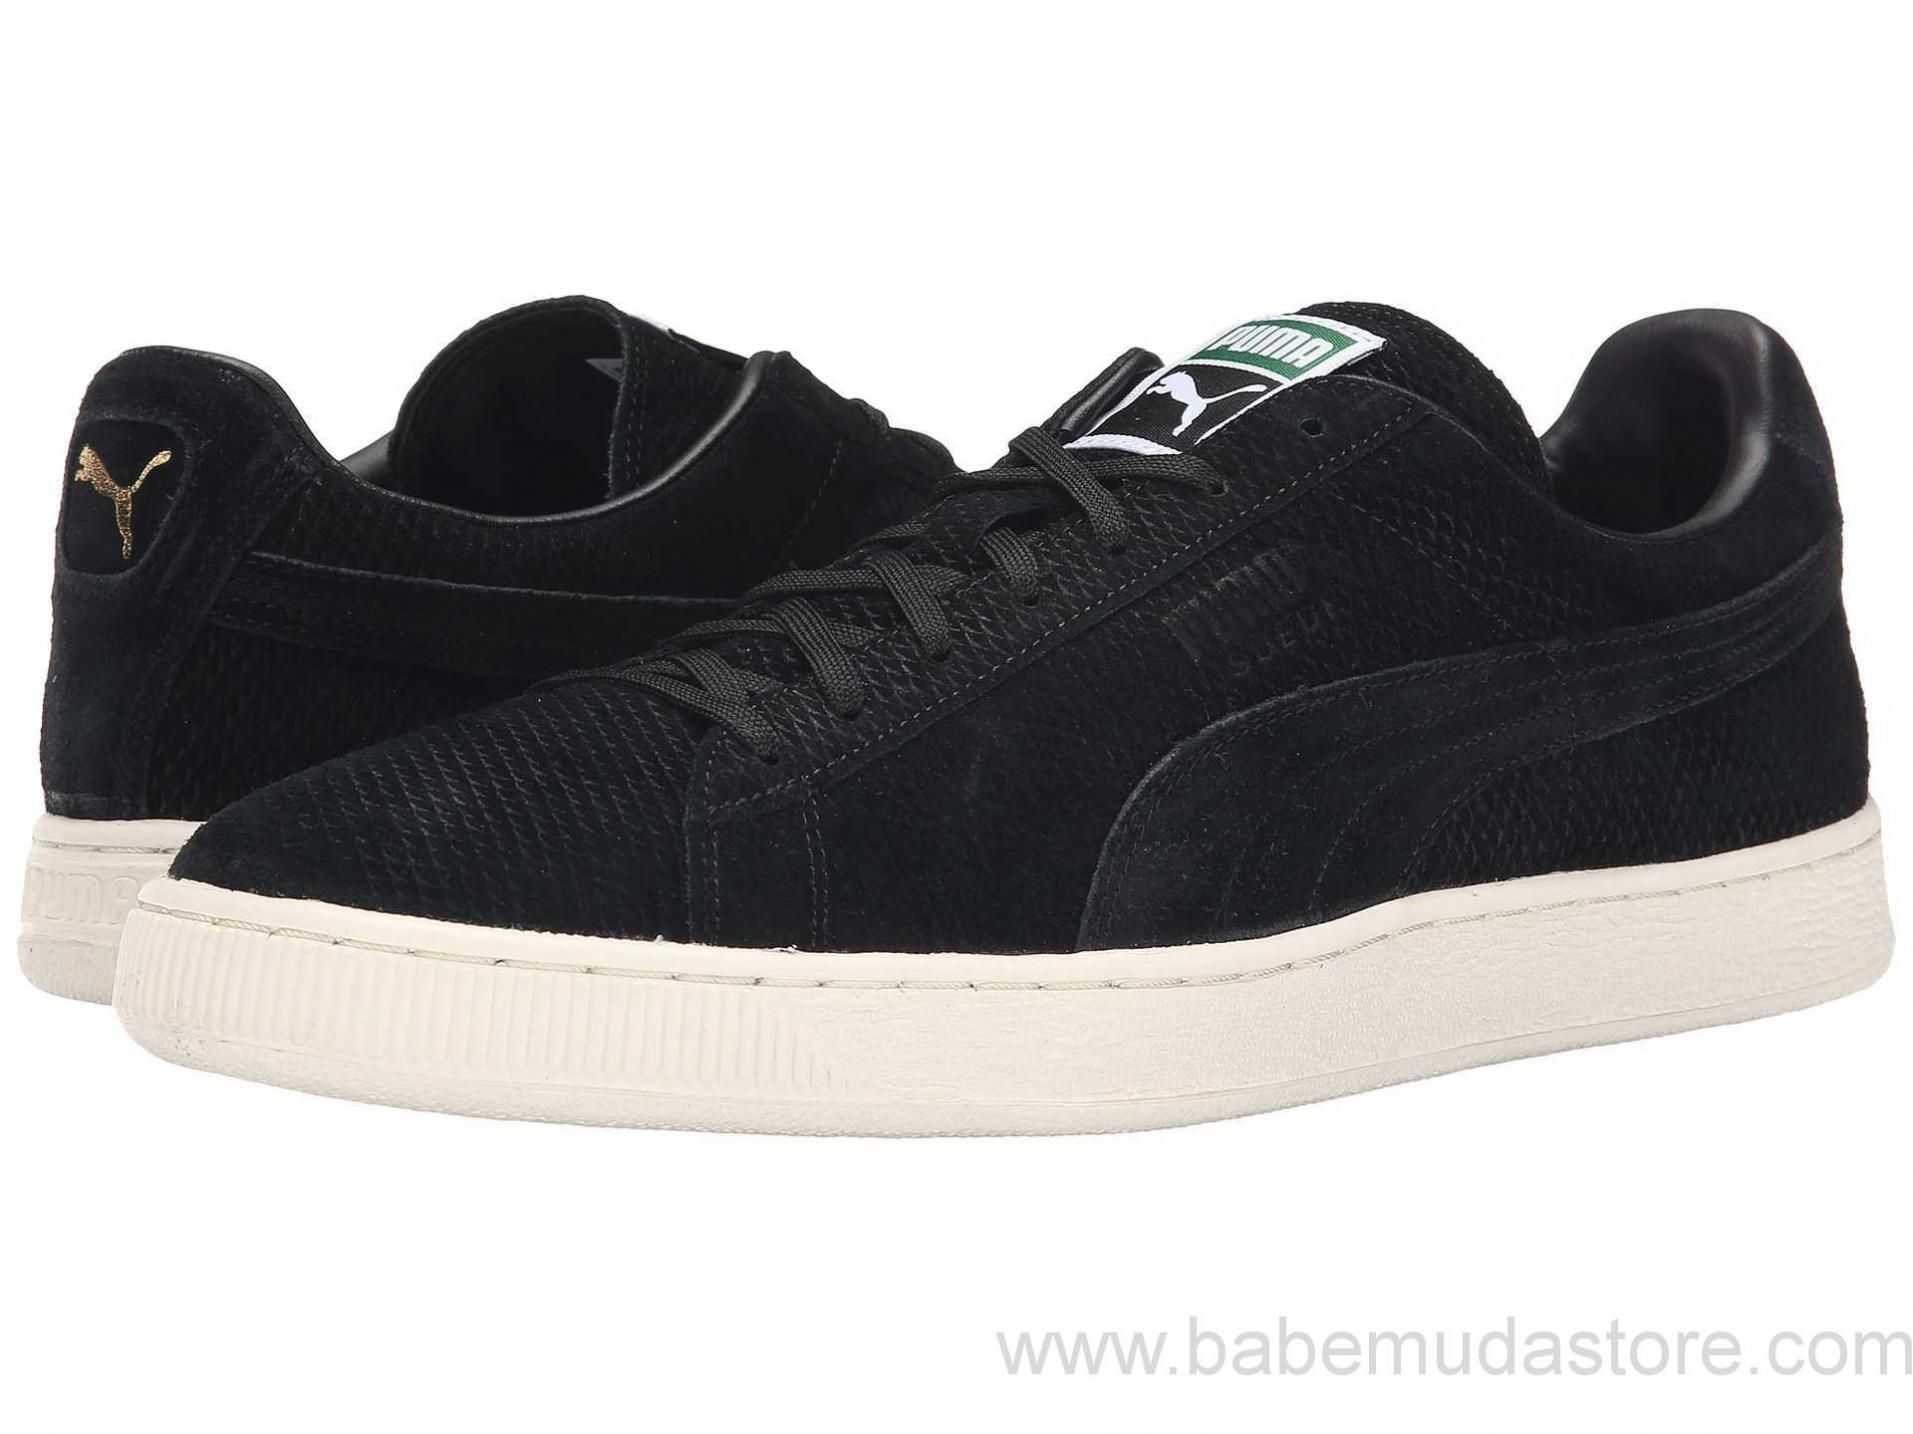 2017 Chaussures Hommes Puma Suede Classic + Mod Heritage